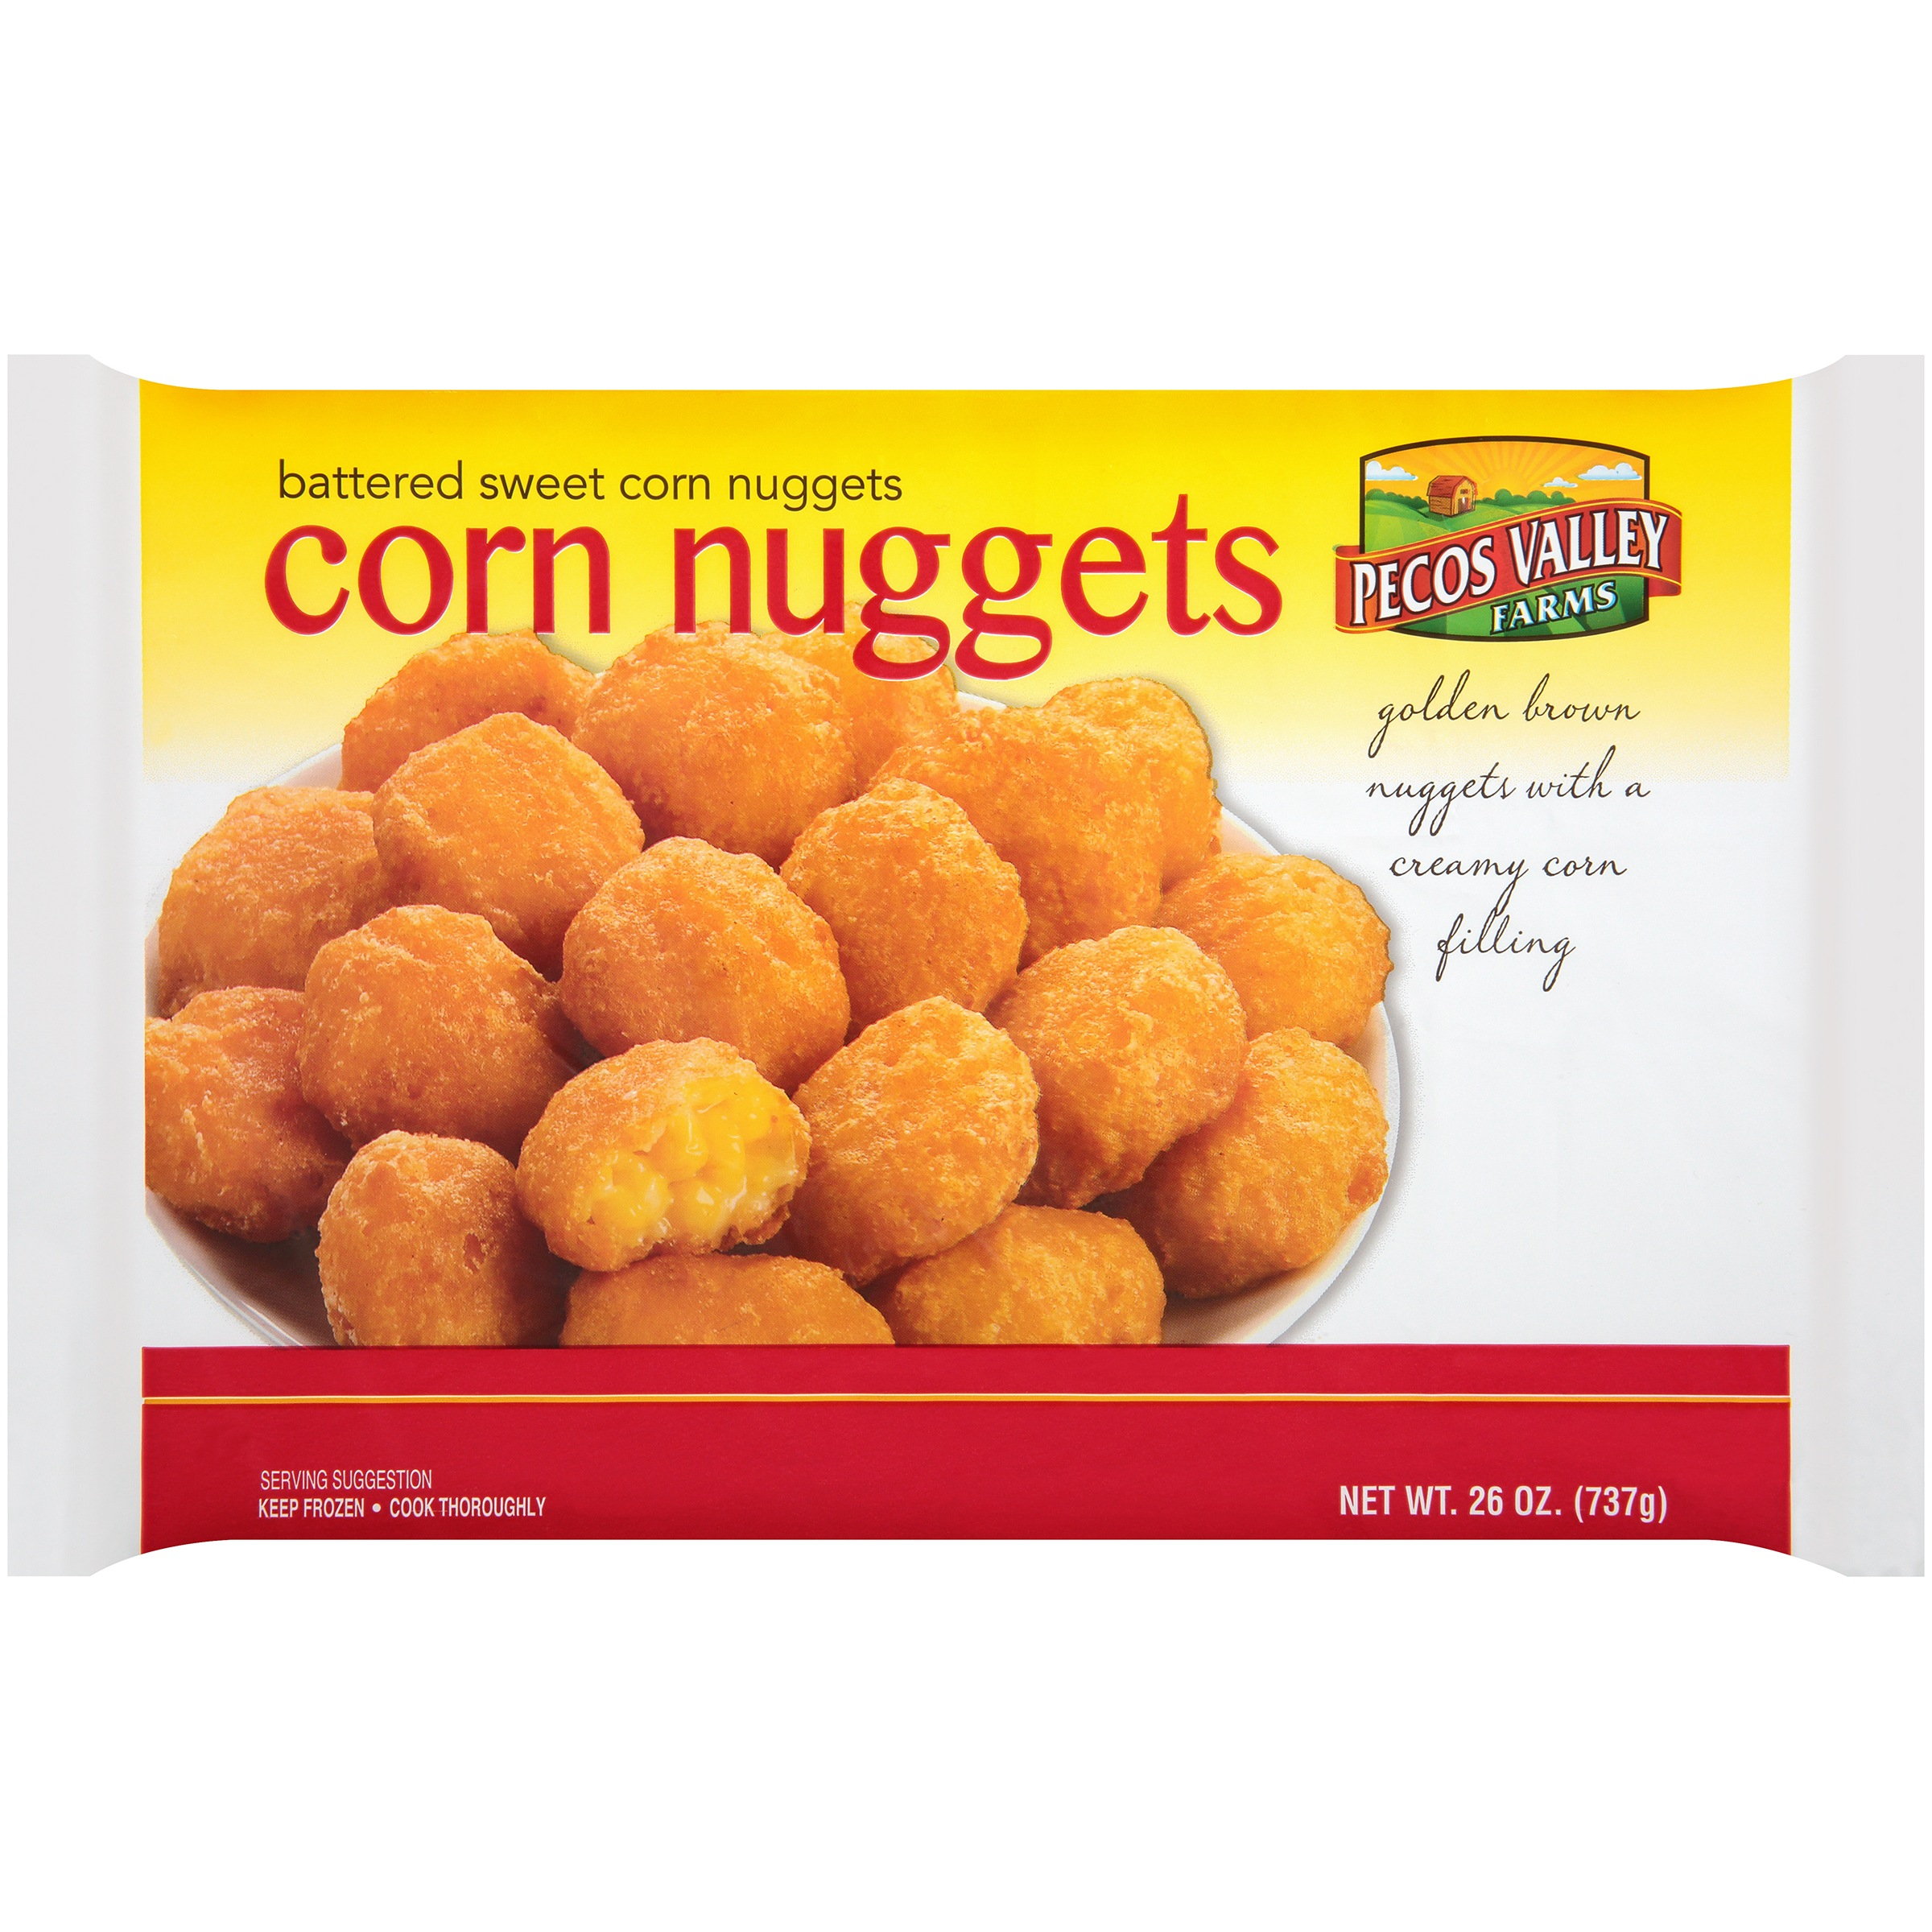 Pecos Valley Farms Battered Sweet Corn Nuggets 26 oz  Bag